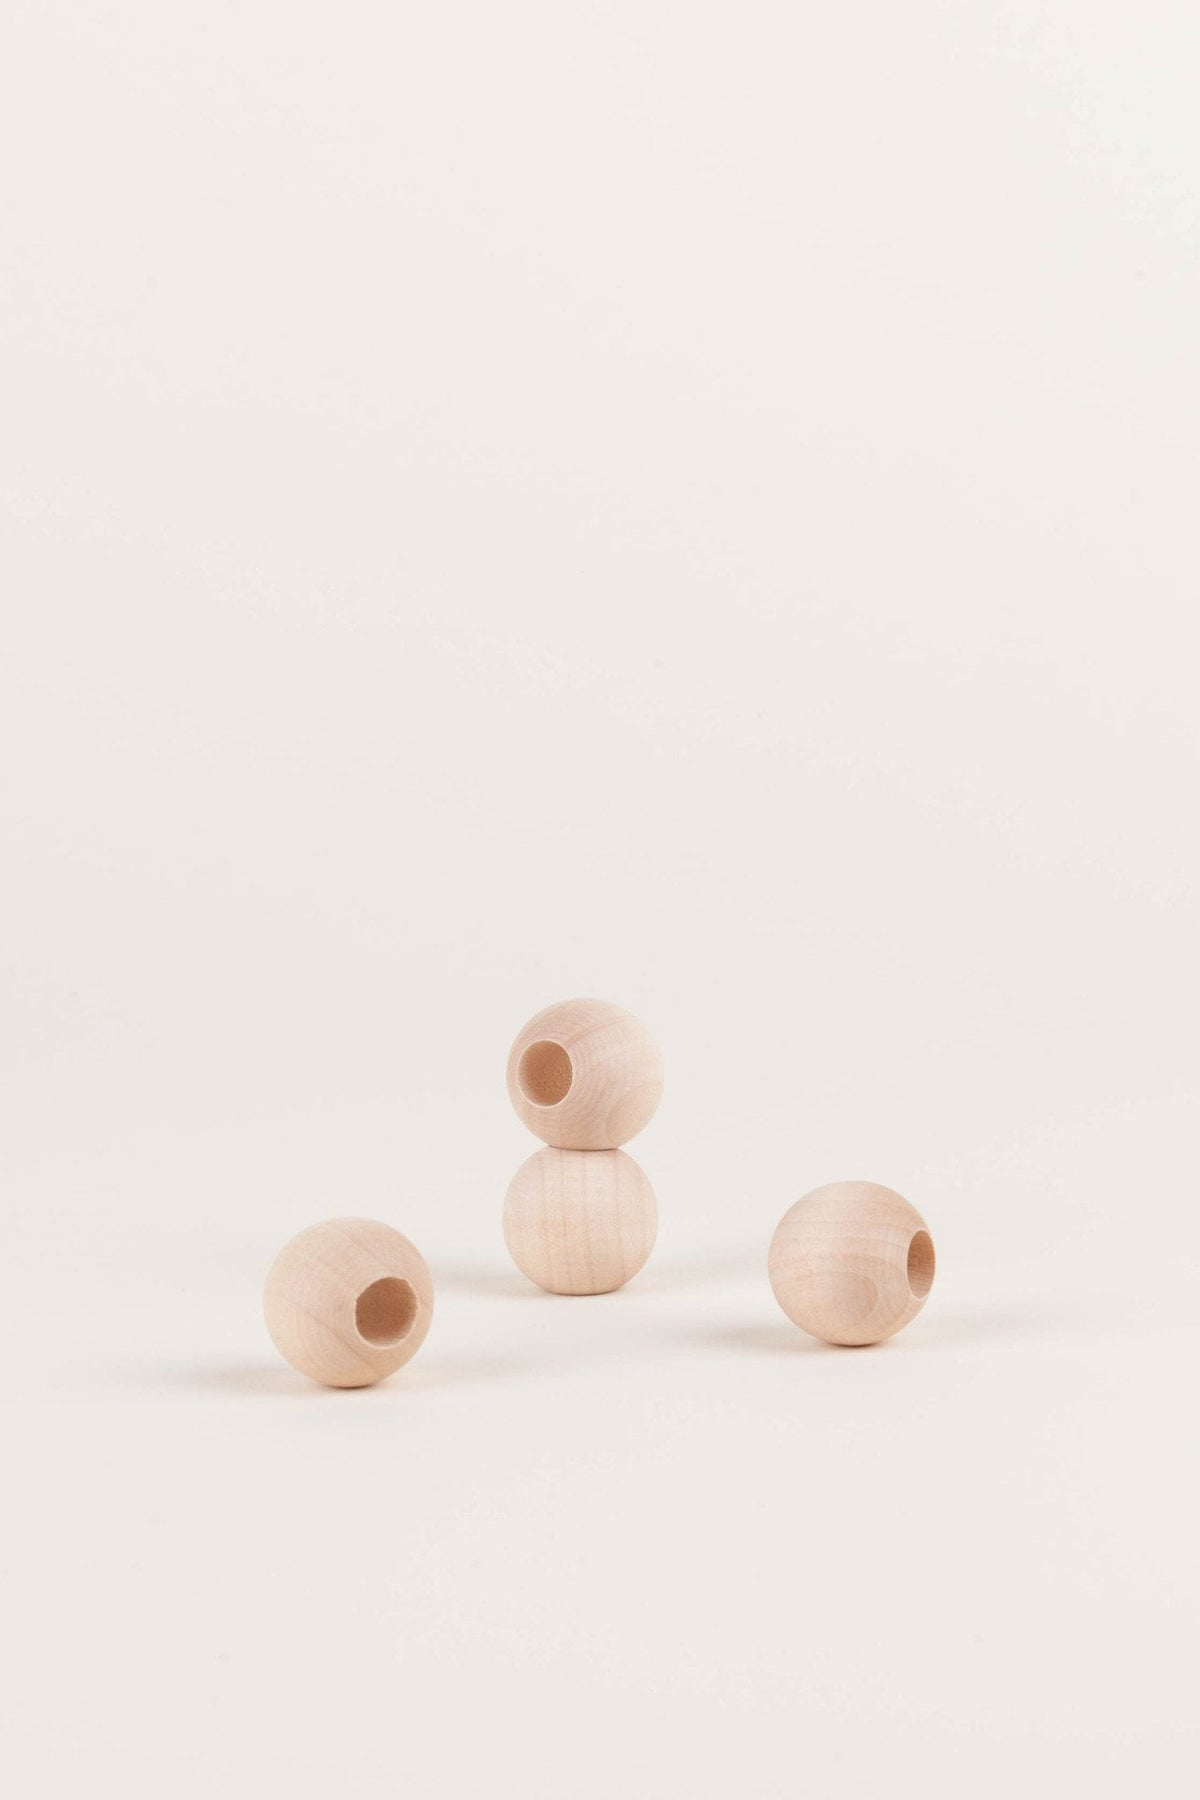 Natural Wood Beads - Round, Beads - MODERN MACRAMÉ